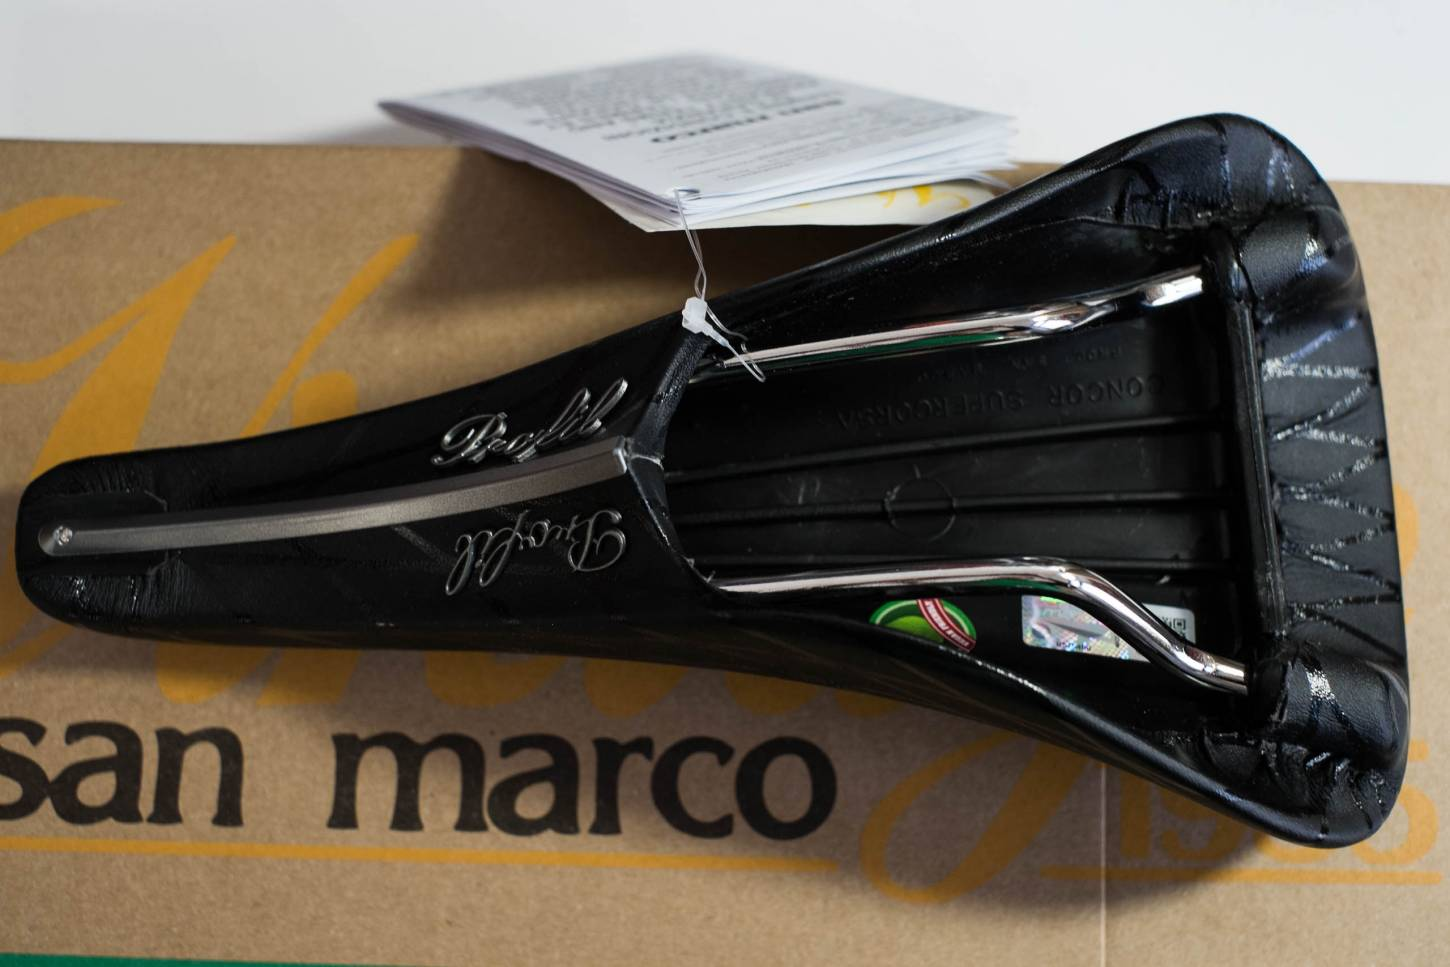 X Profil San Marco Concor X Selle Microfeel Saddle - noir Vegan Friendly